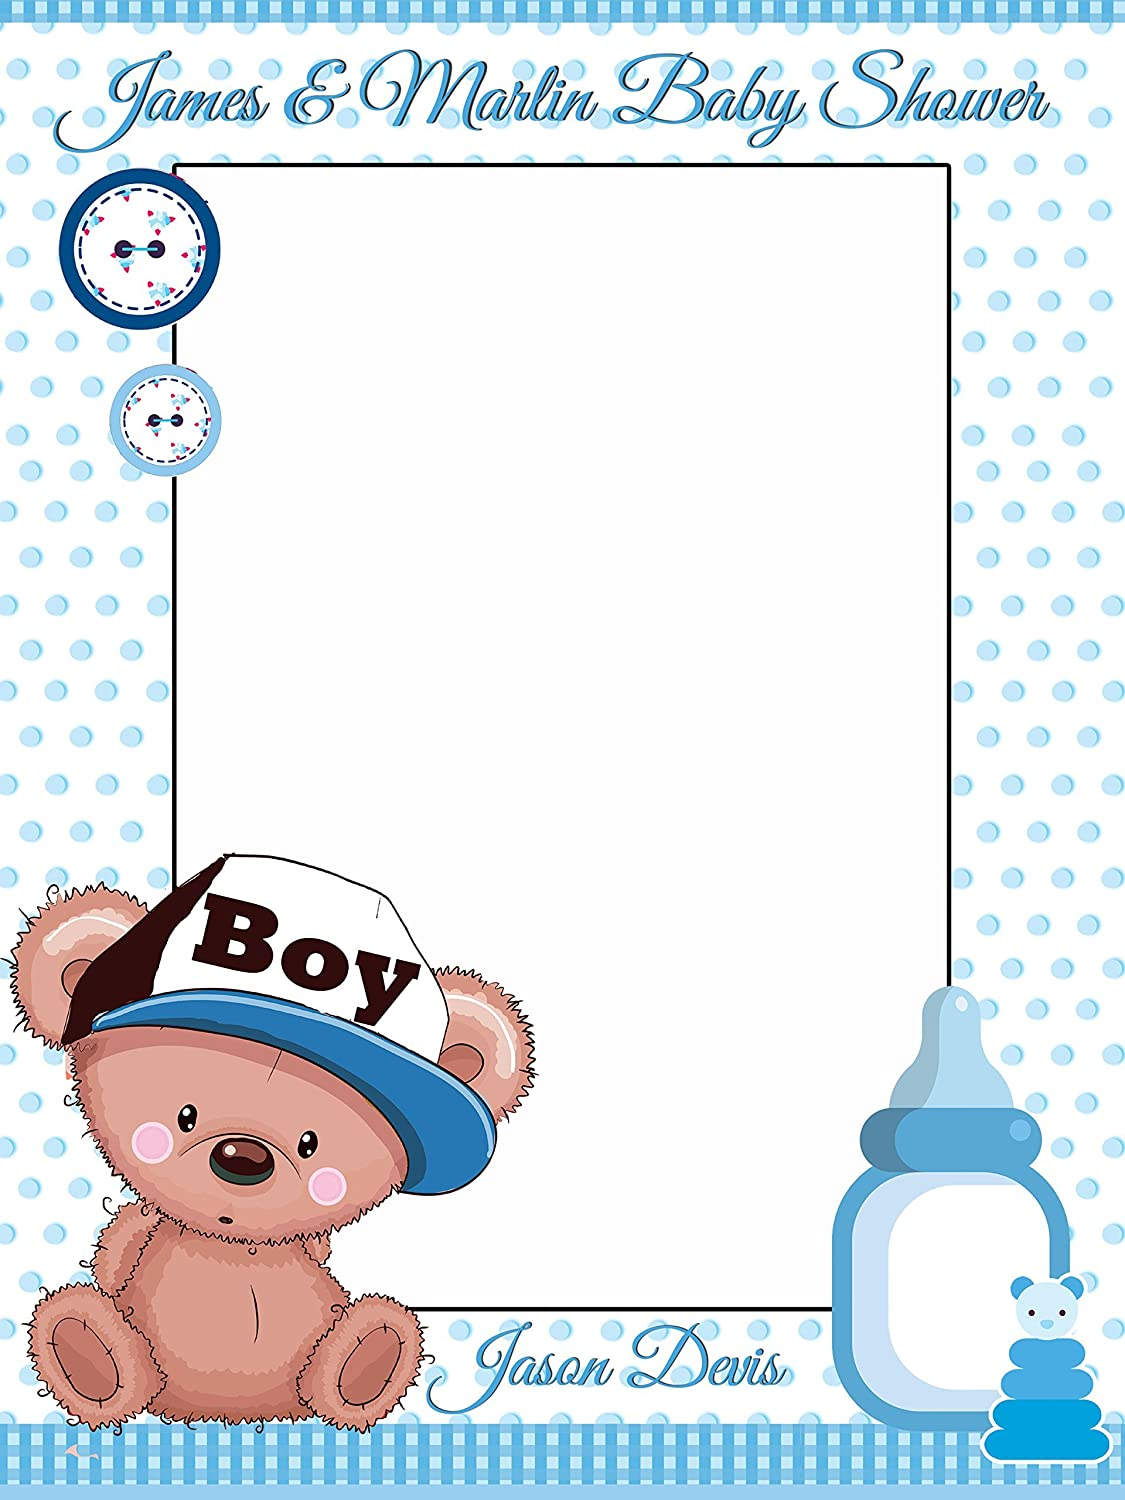 Amazon.com: Custom Home Decor Teddy Bear Baby Shower Photo Booth Prop    Sizes 36x24, 48x36; Personalized Social Media Style Baby Shower Photo Booth  Frame; ...